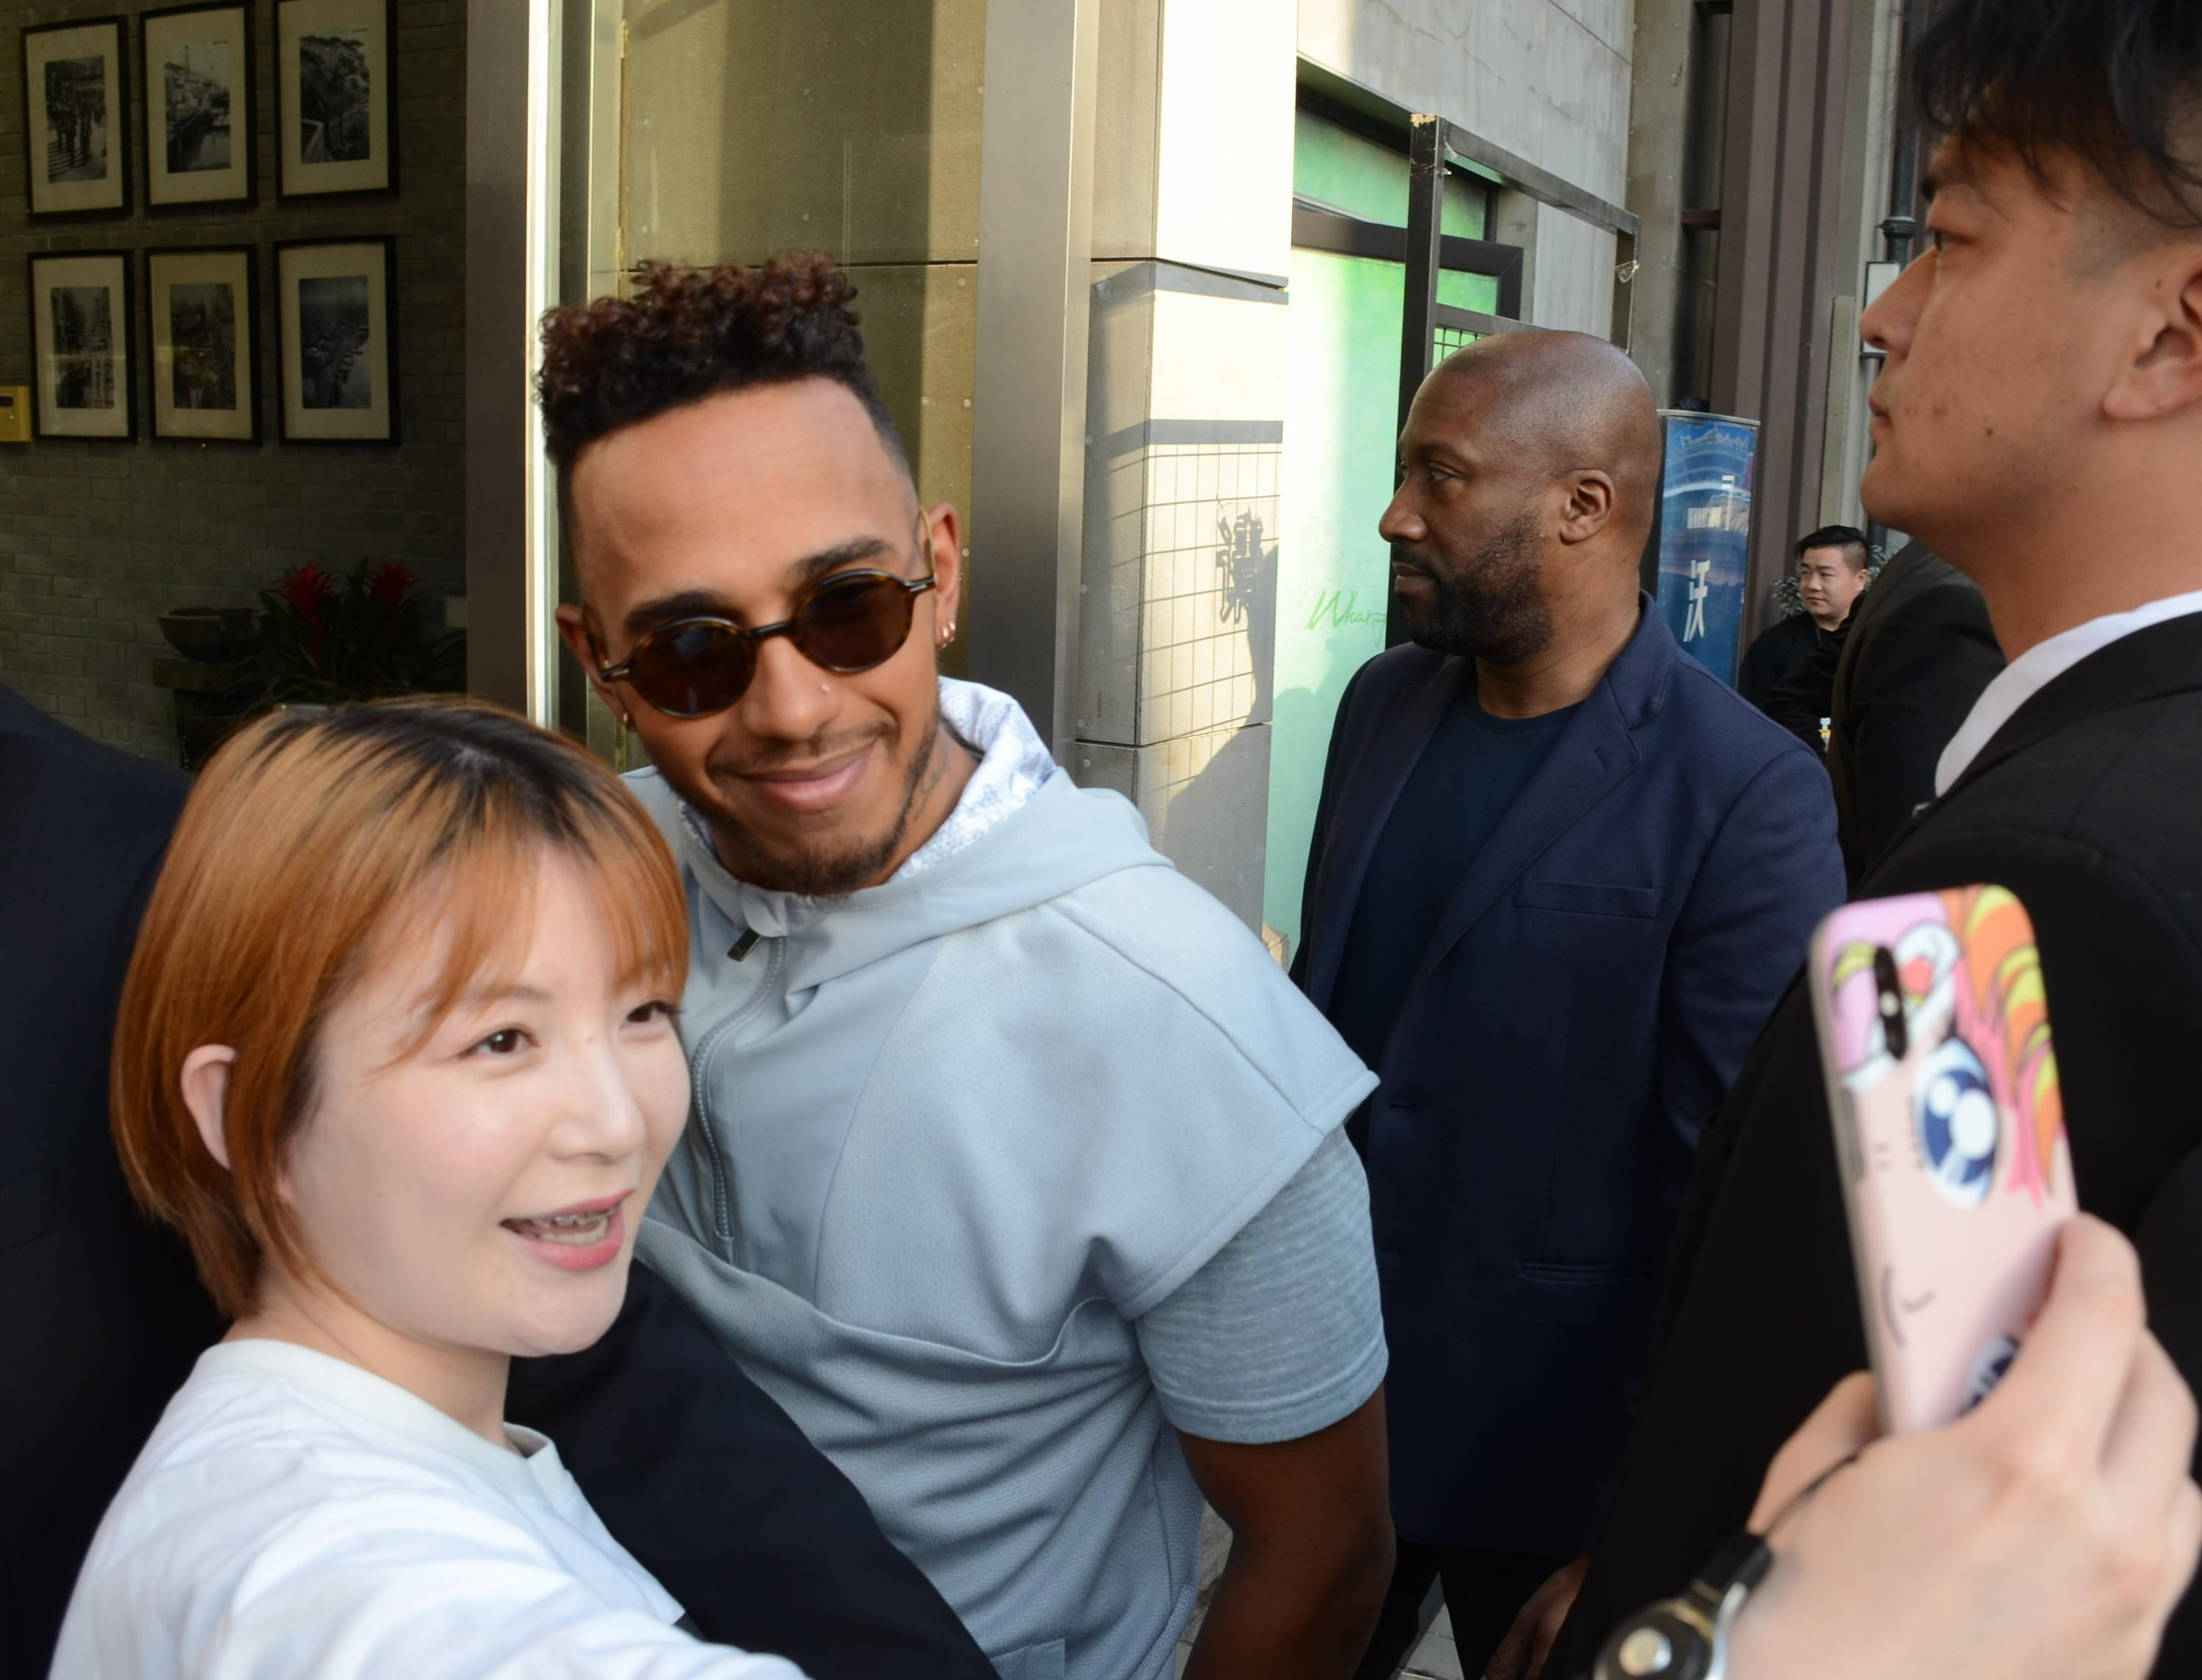 The Brit racer was welcomed by a crowd of fans in China